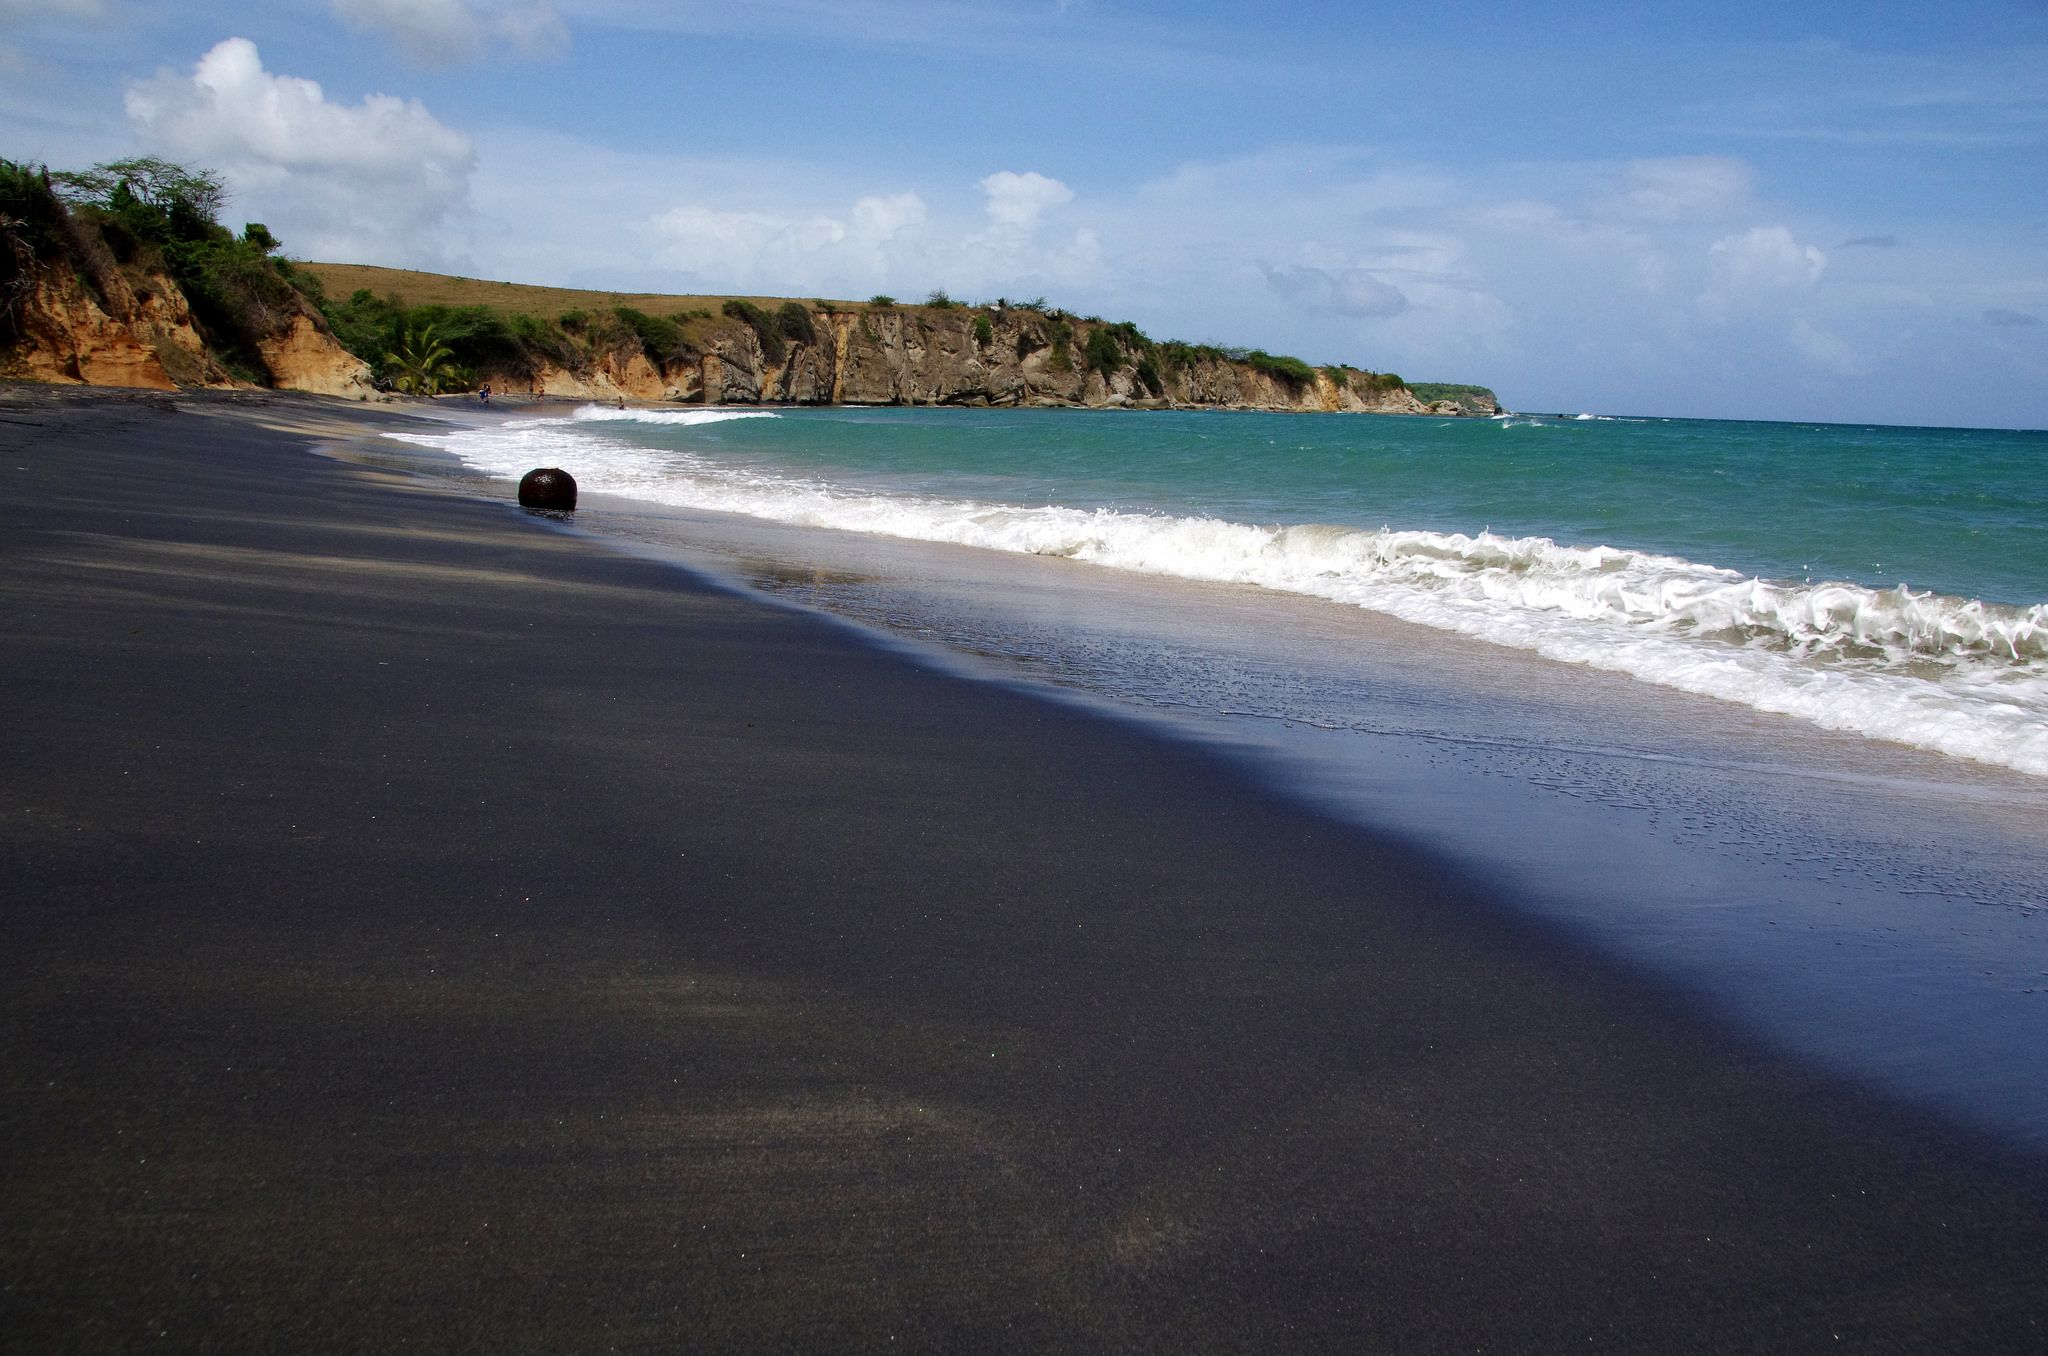 One of the most dramatic & beautiful beaches in Vieques